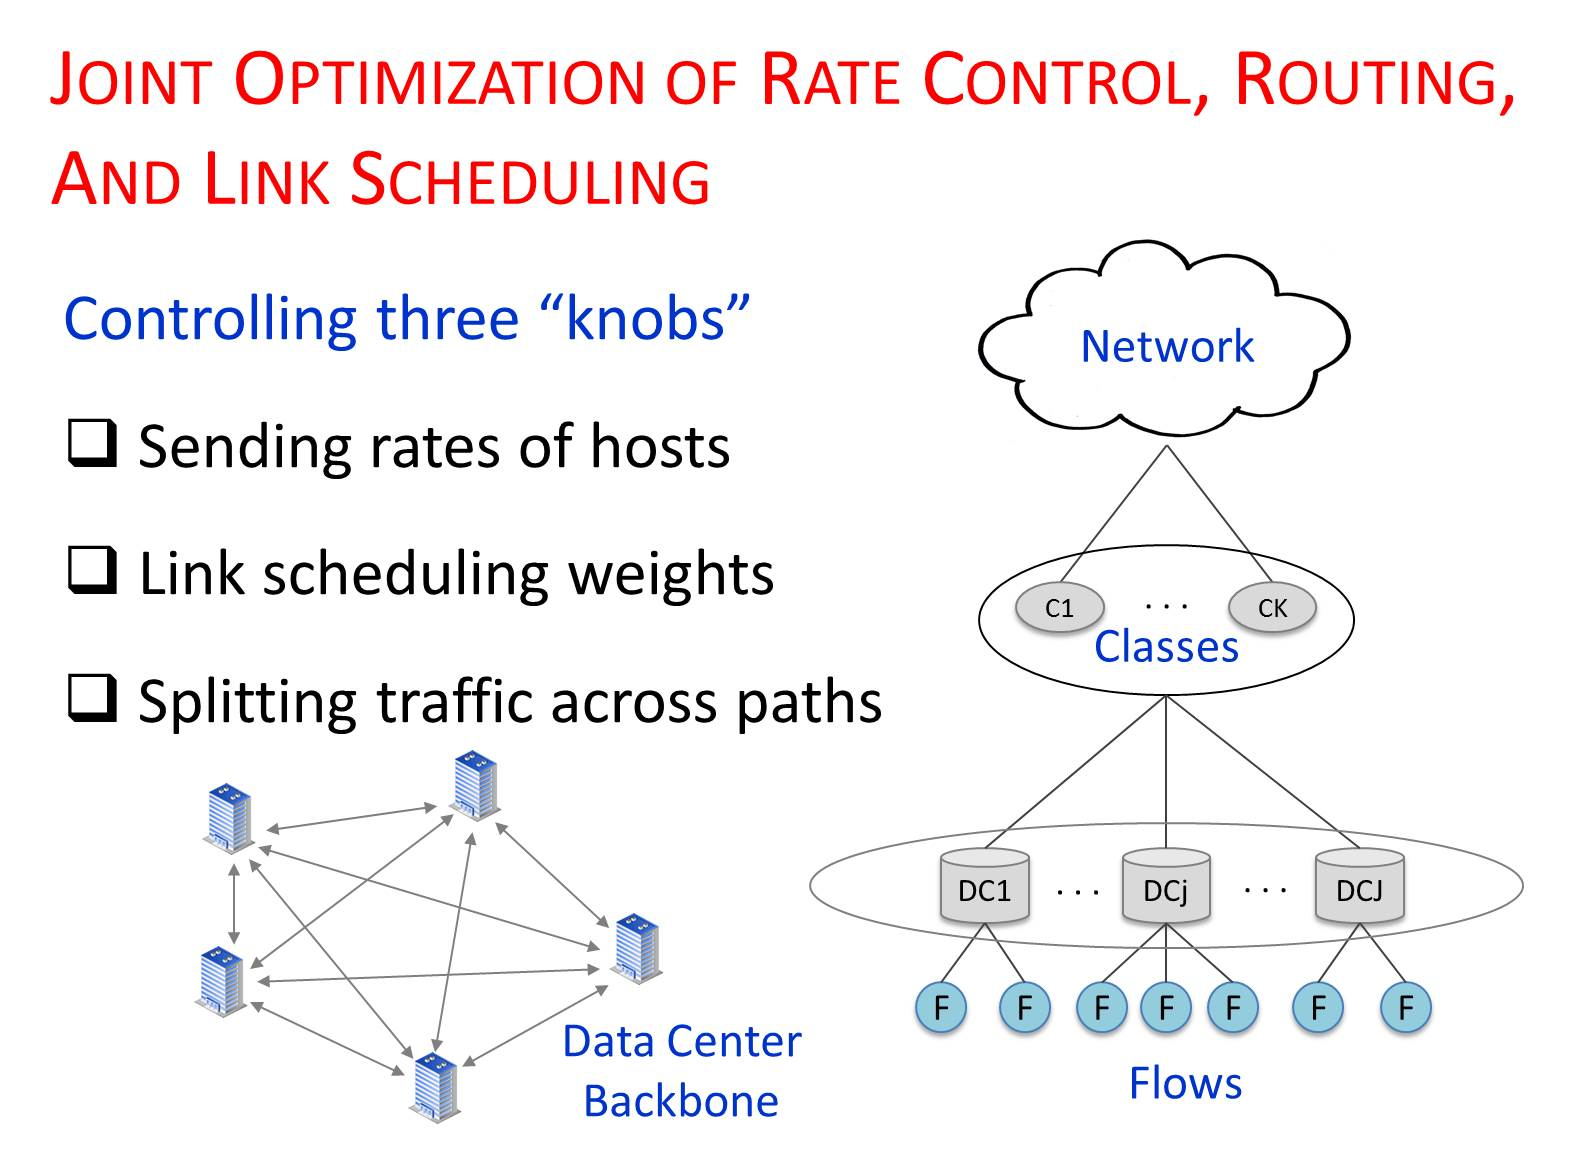 Amitabha Ghosh Hotel Network Topology Diagram Guesthouse Wifi Large Online Service Providers Osps Such As Google Yahoo And Microsoft Often Build Private Backbone Networks To Interconnect Data Centers In Multiple